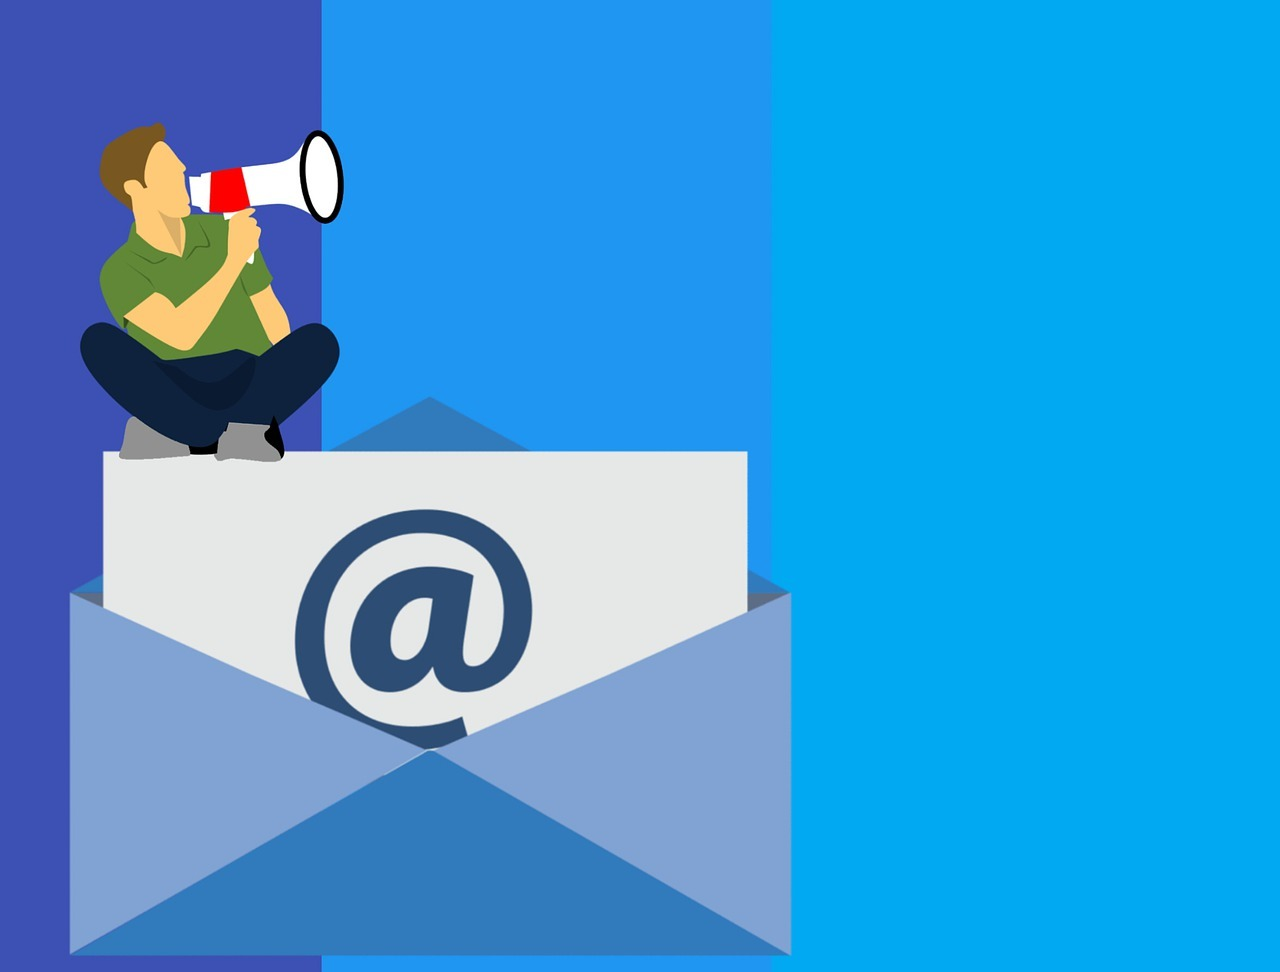 Email Marketing: A Powerful Content Channel